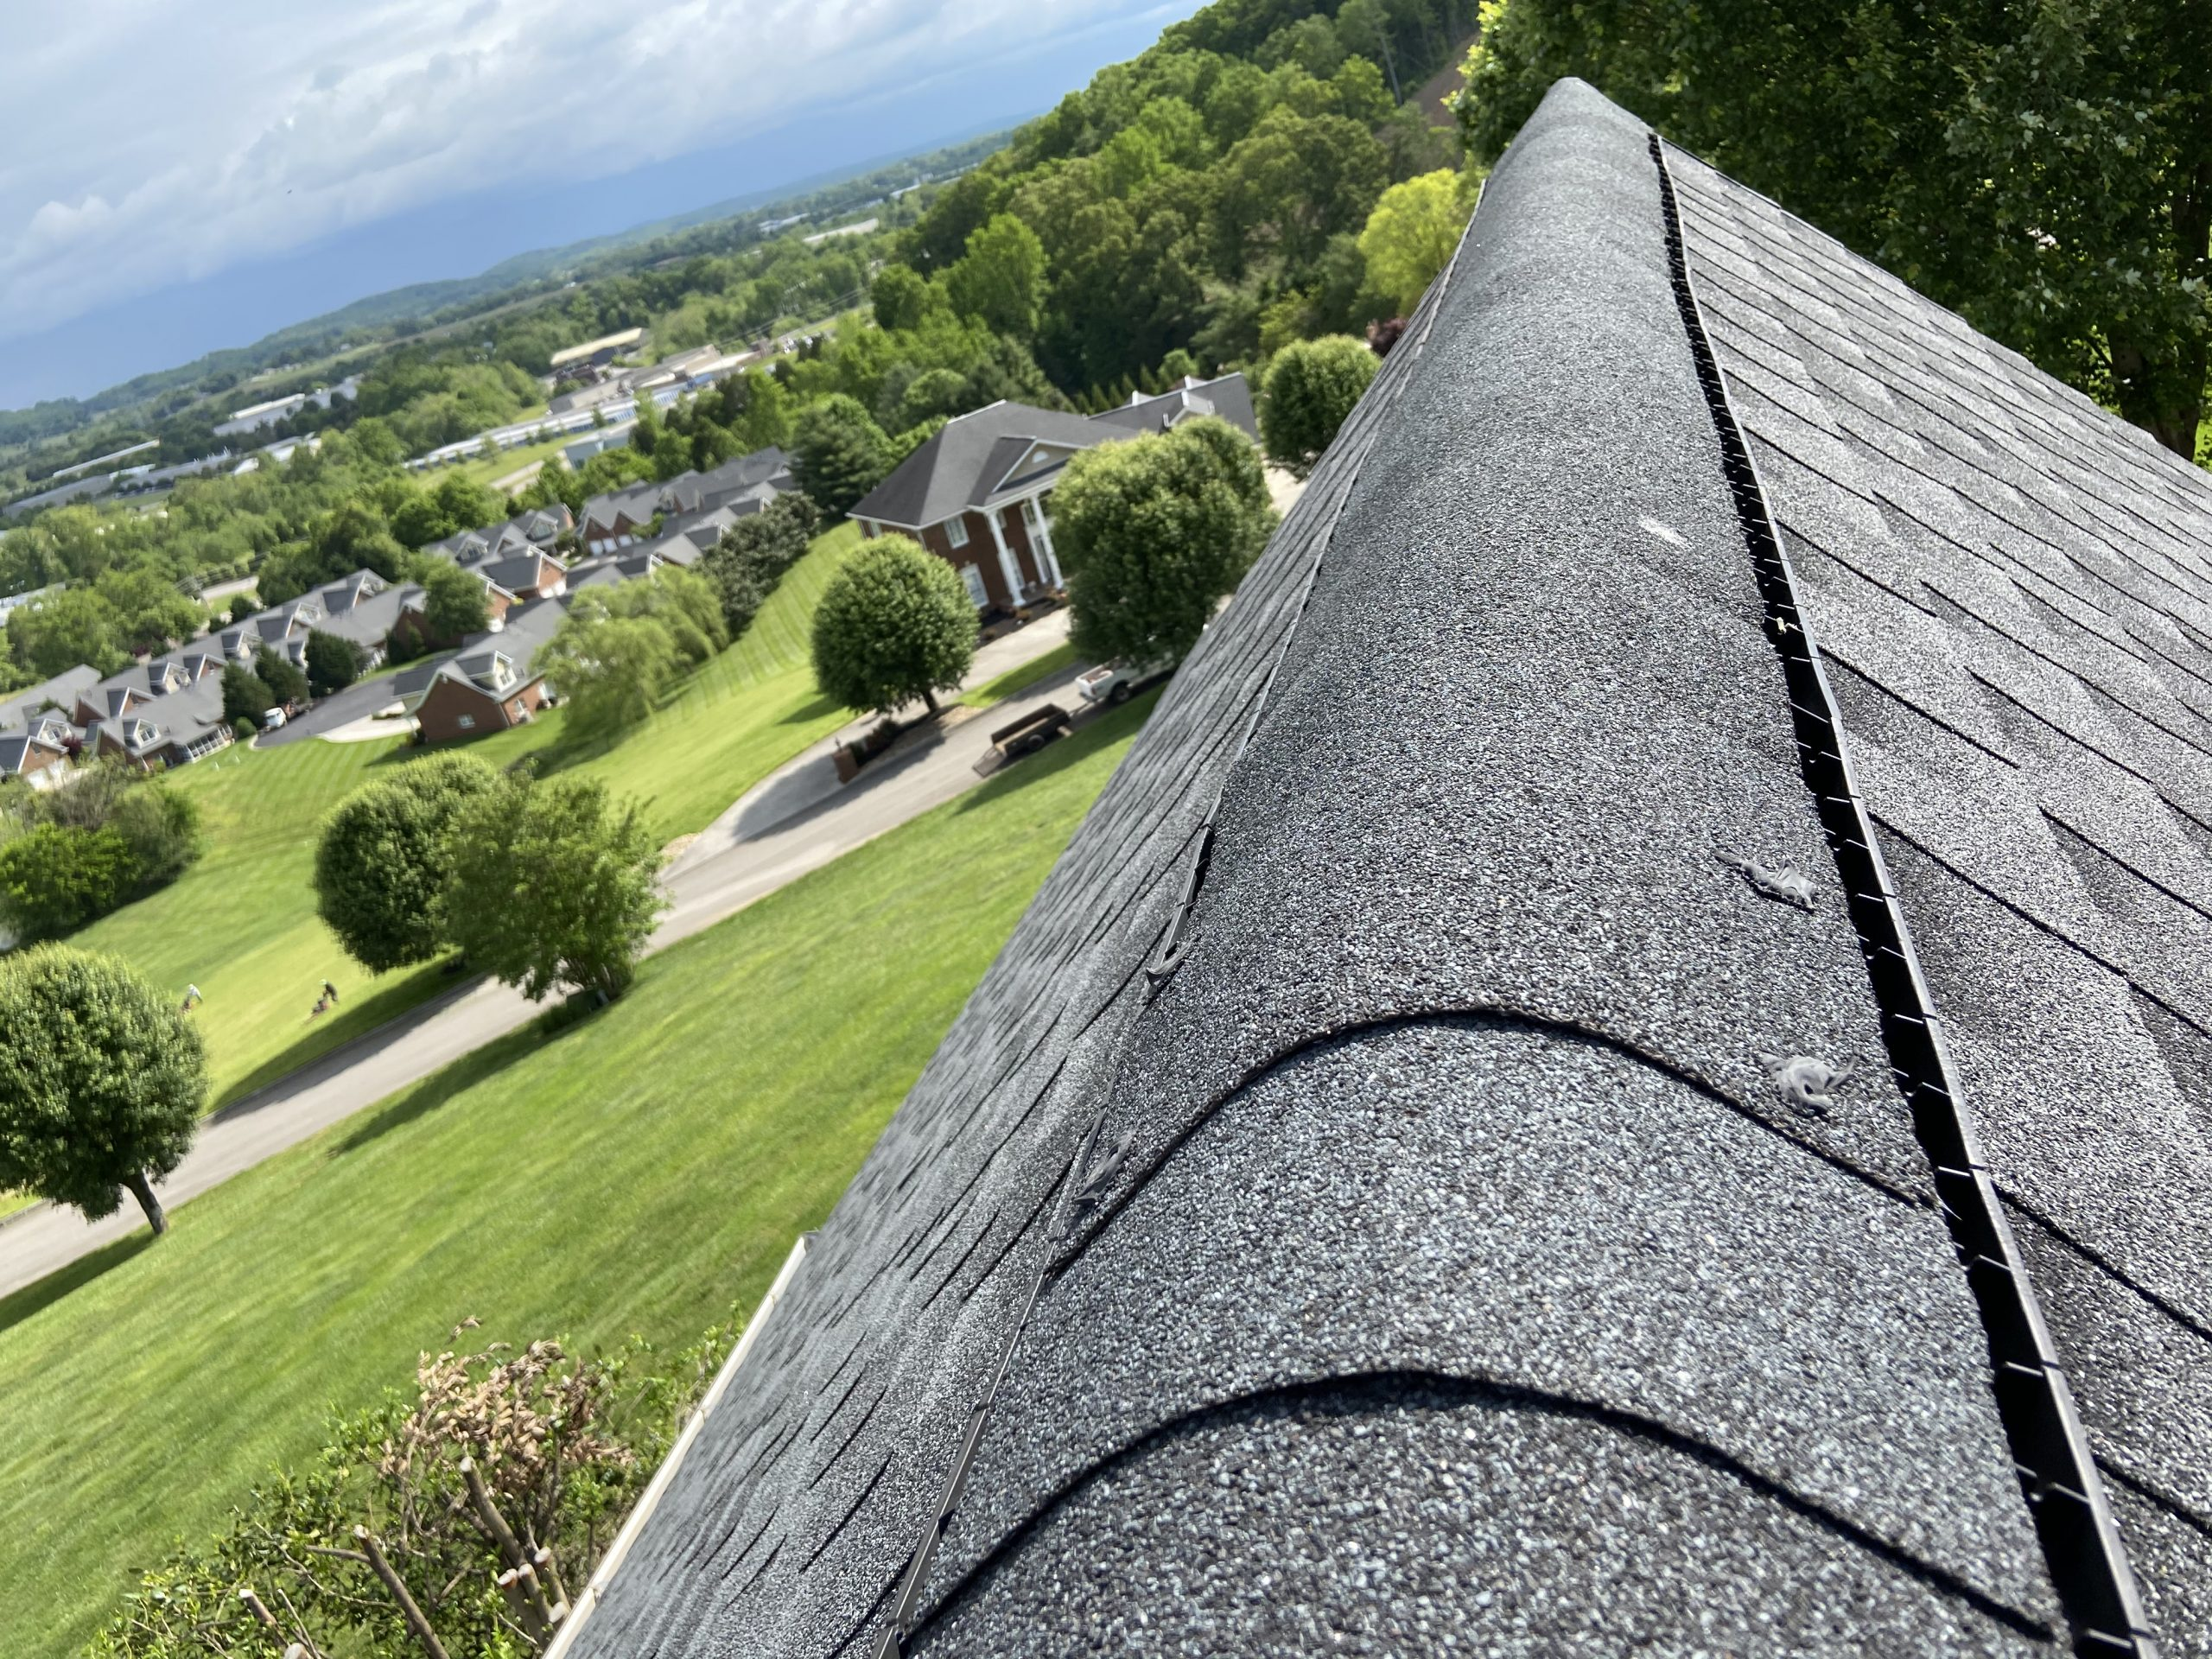 This is the ridge of a high and steep roof showing the ridge cap shingles.